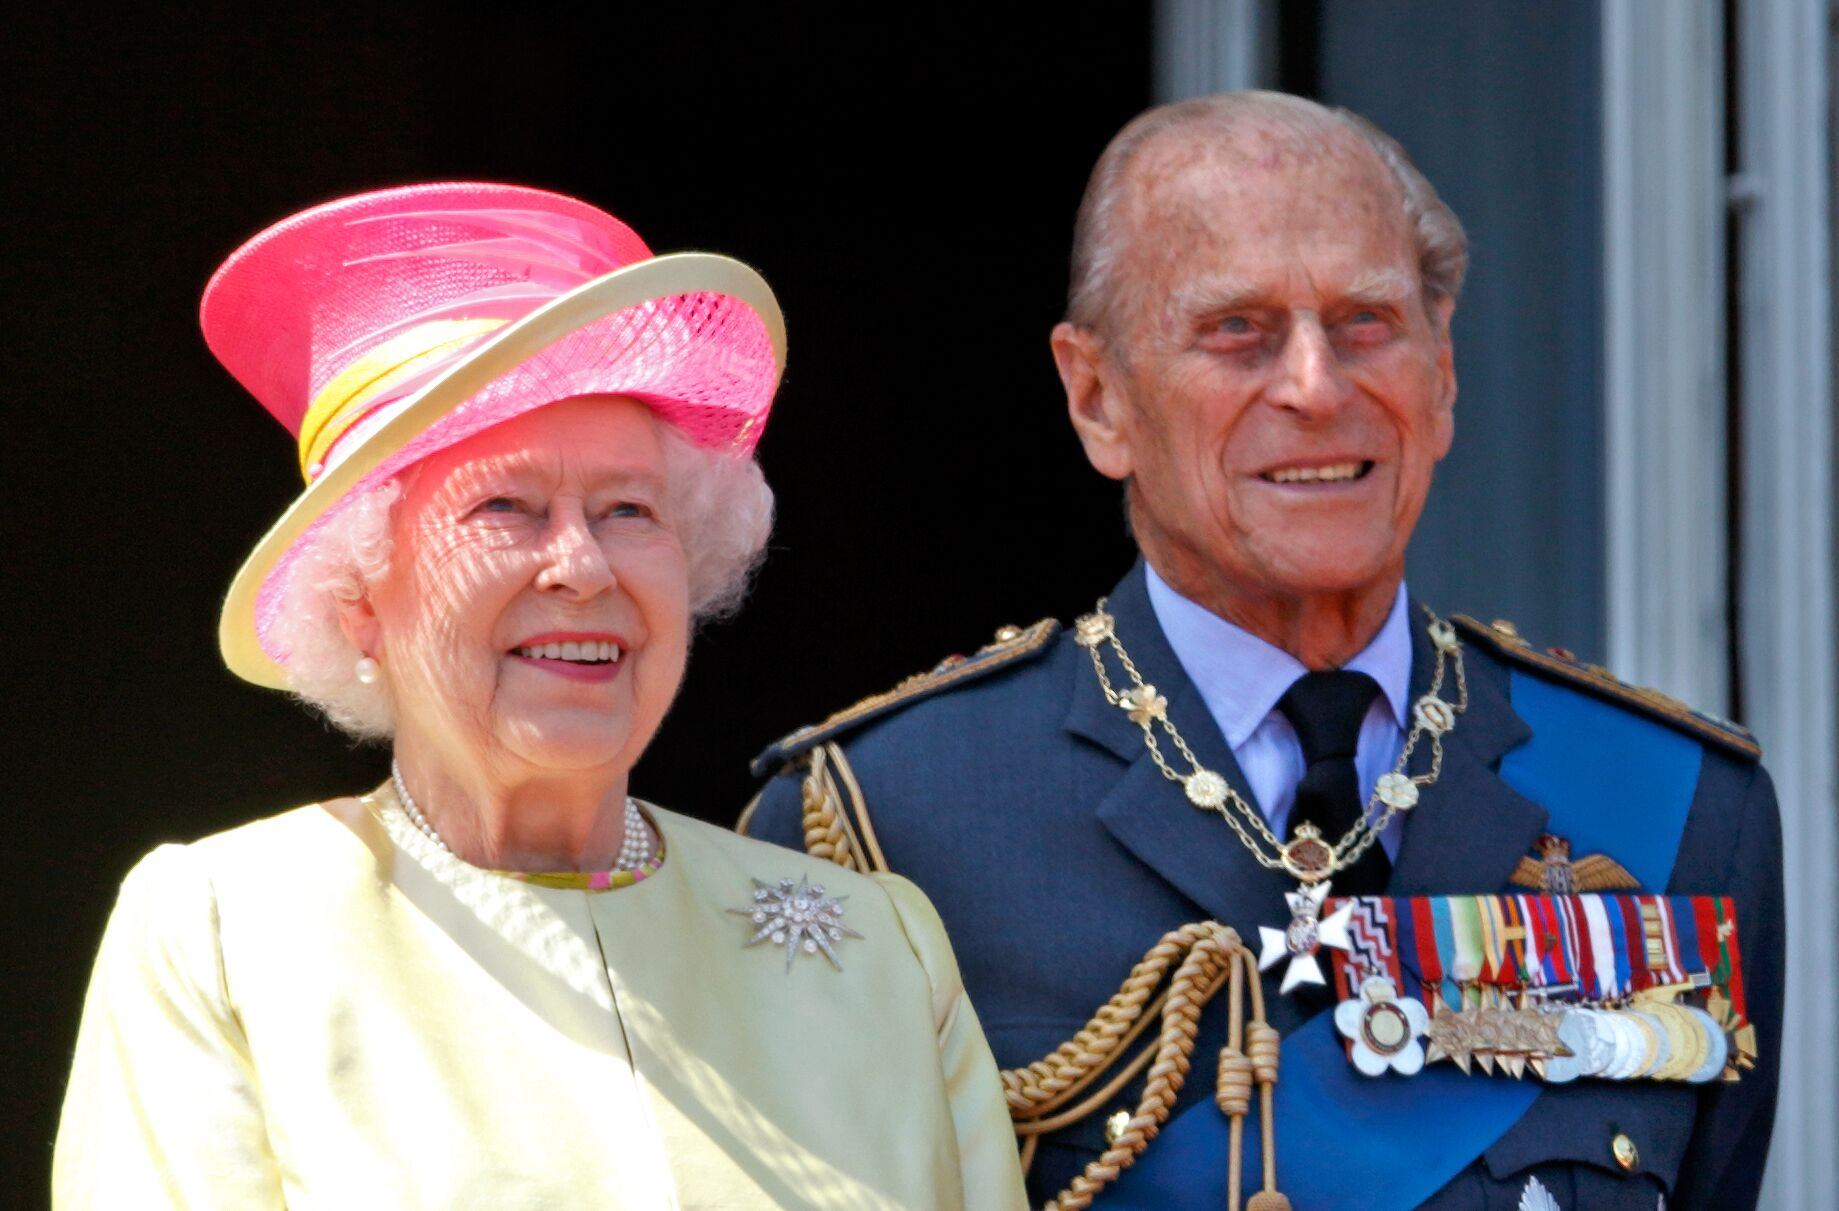 Queen Elizabeth II and Prince Philip, Duke of Edinburgh watch a flypast of Spitfire & Hurricane aircraft from the balcony of Buckingham Palace. | Source: Getty Images